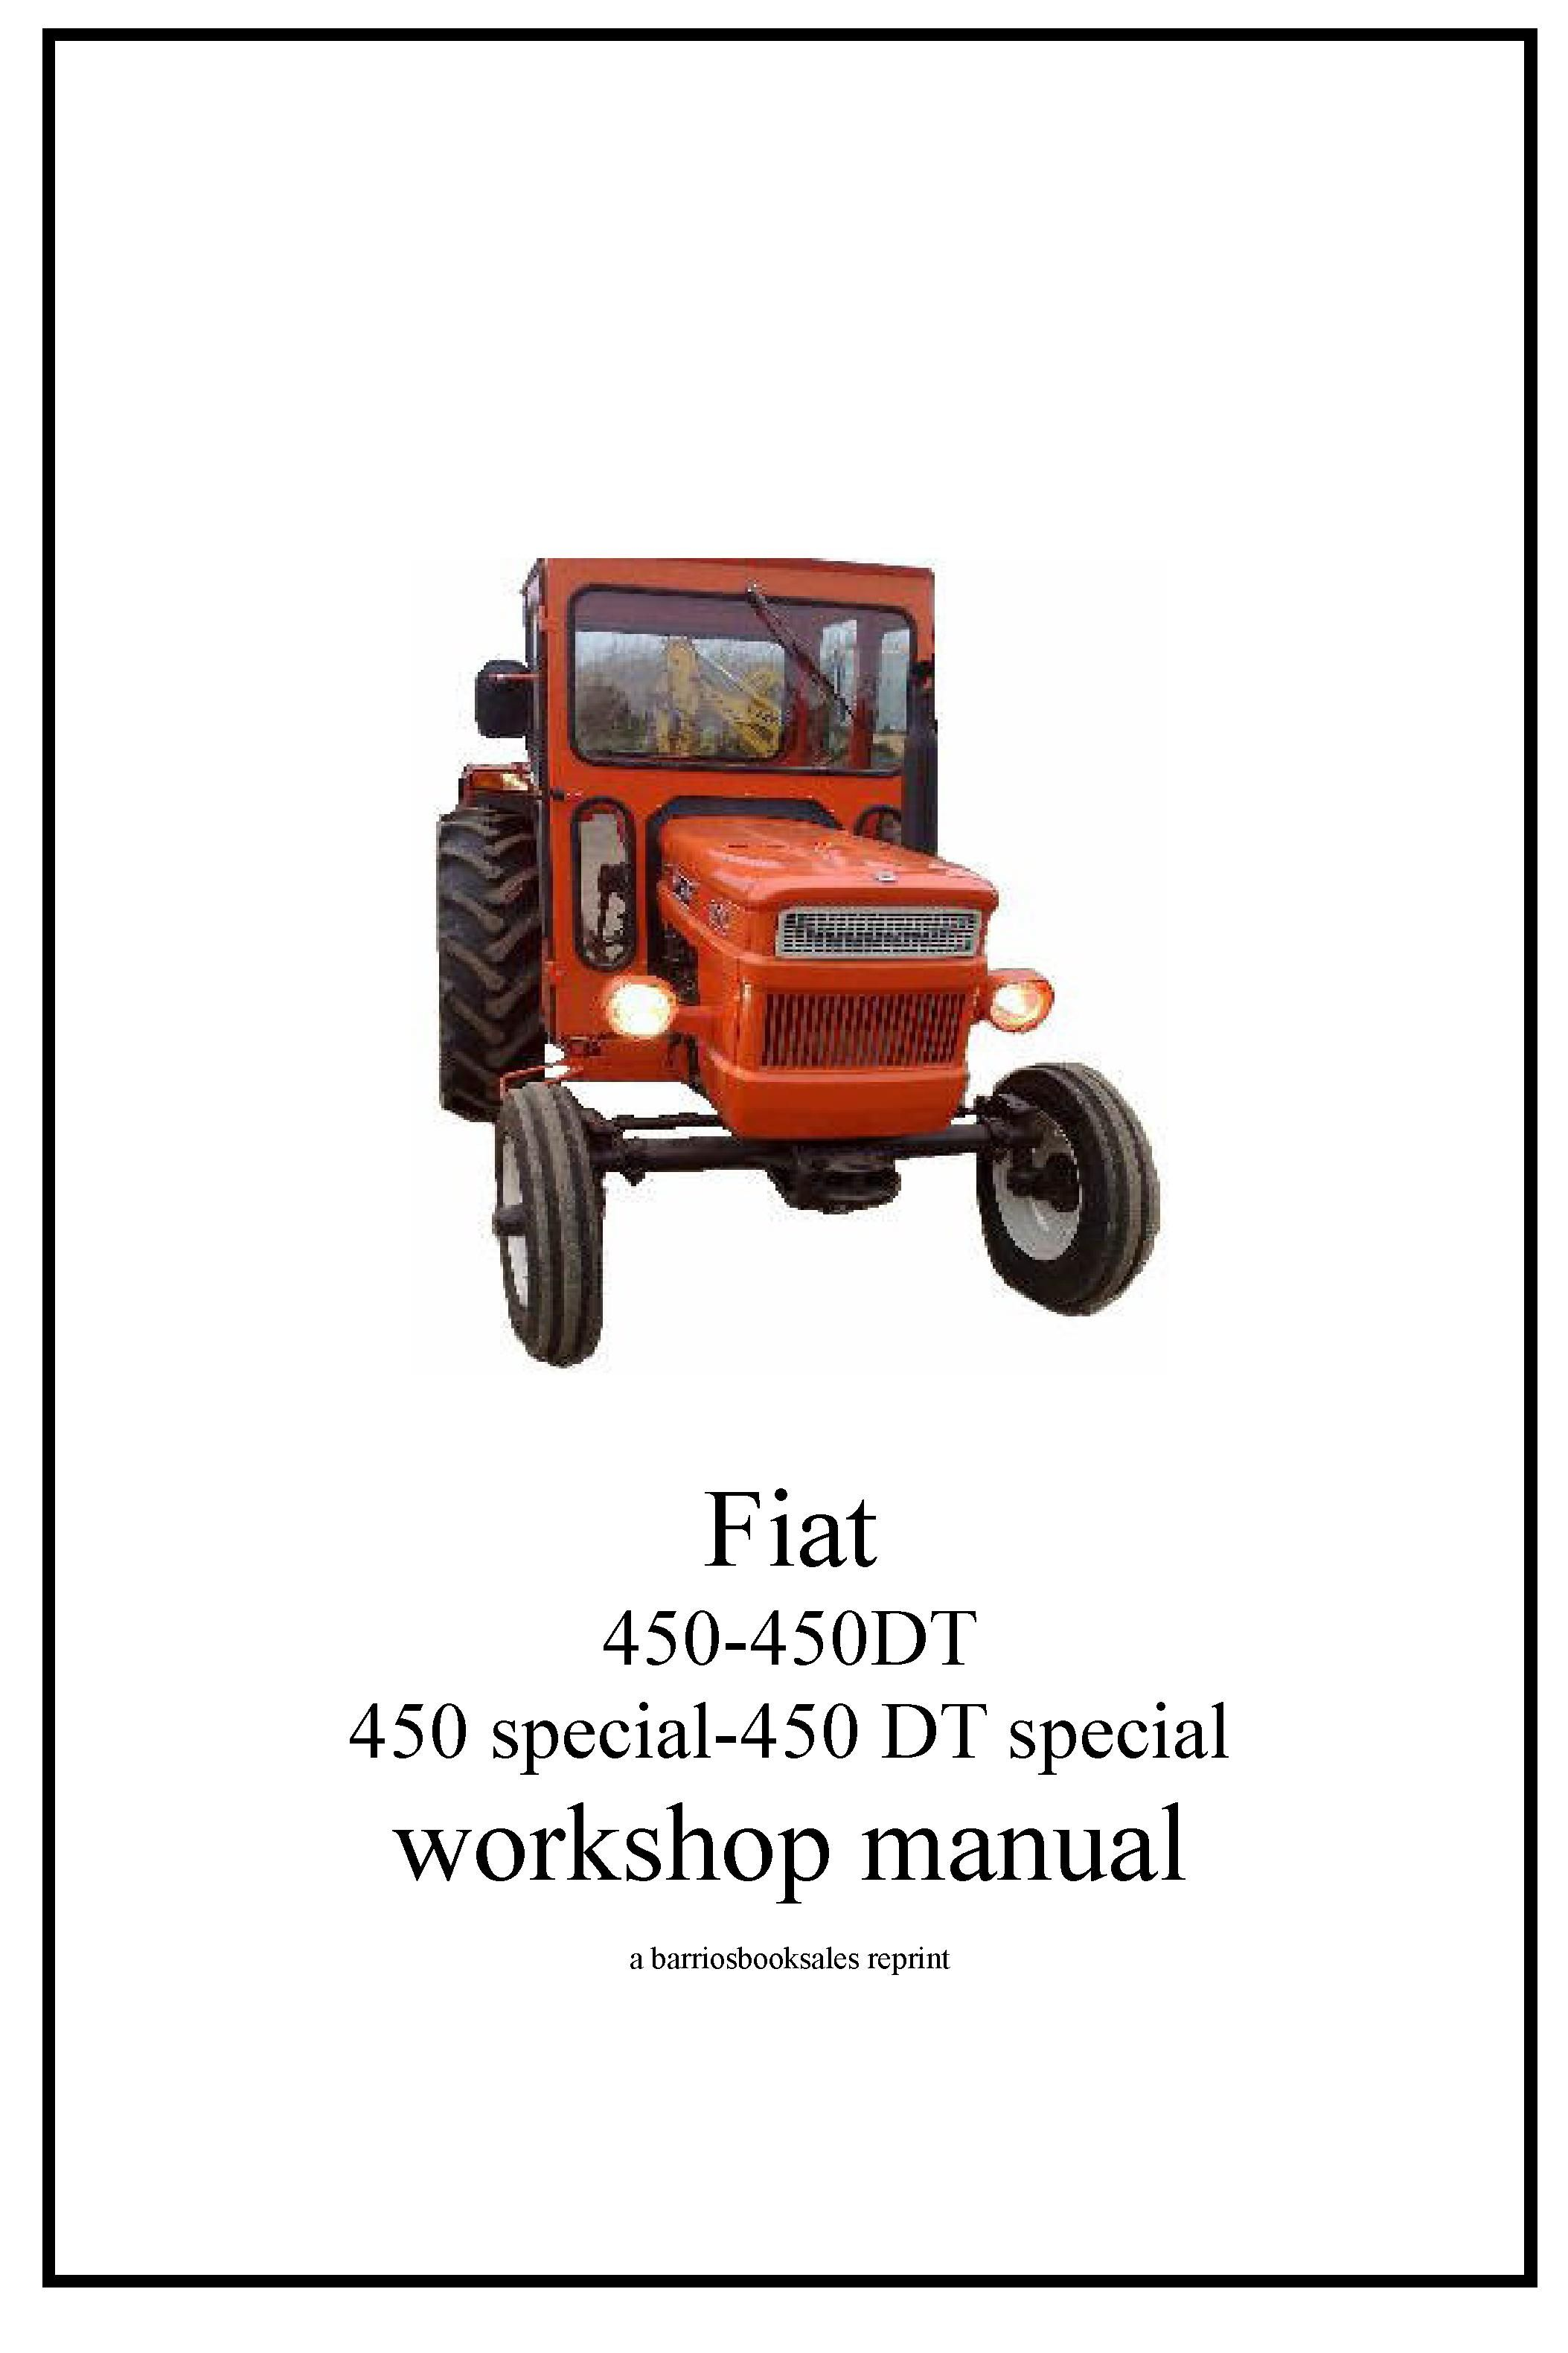 Pin by Tractor manuals downunder on Fiat tractor manuals to download |  Pinterest | Fiat, Tractors and Manual